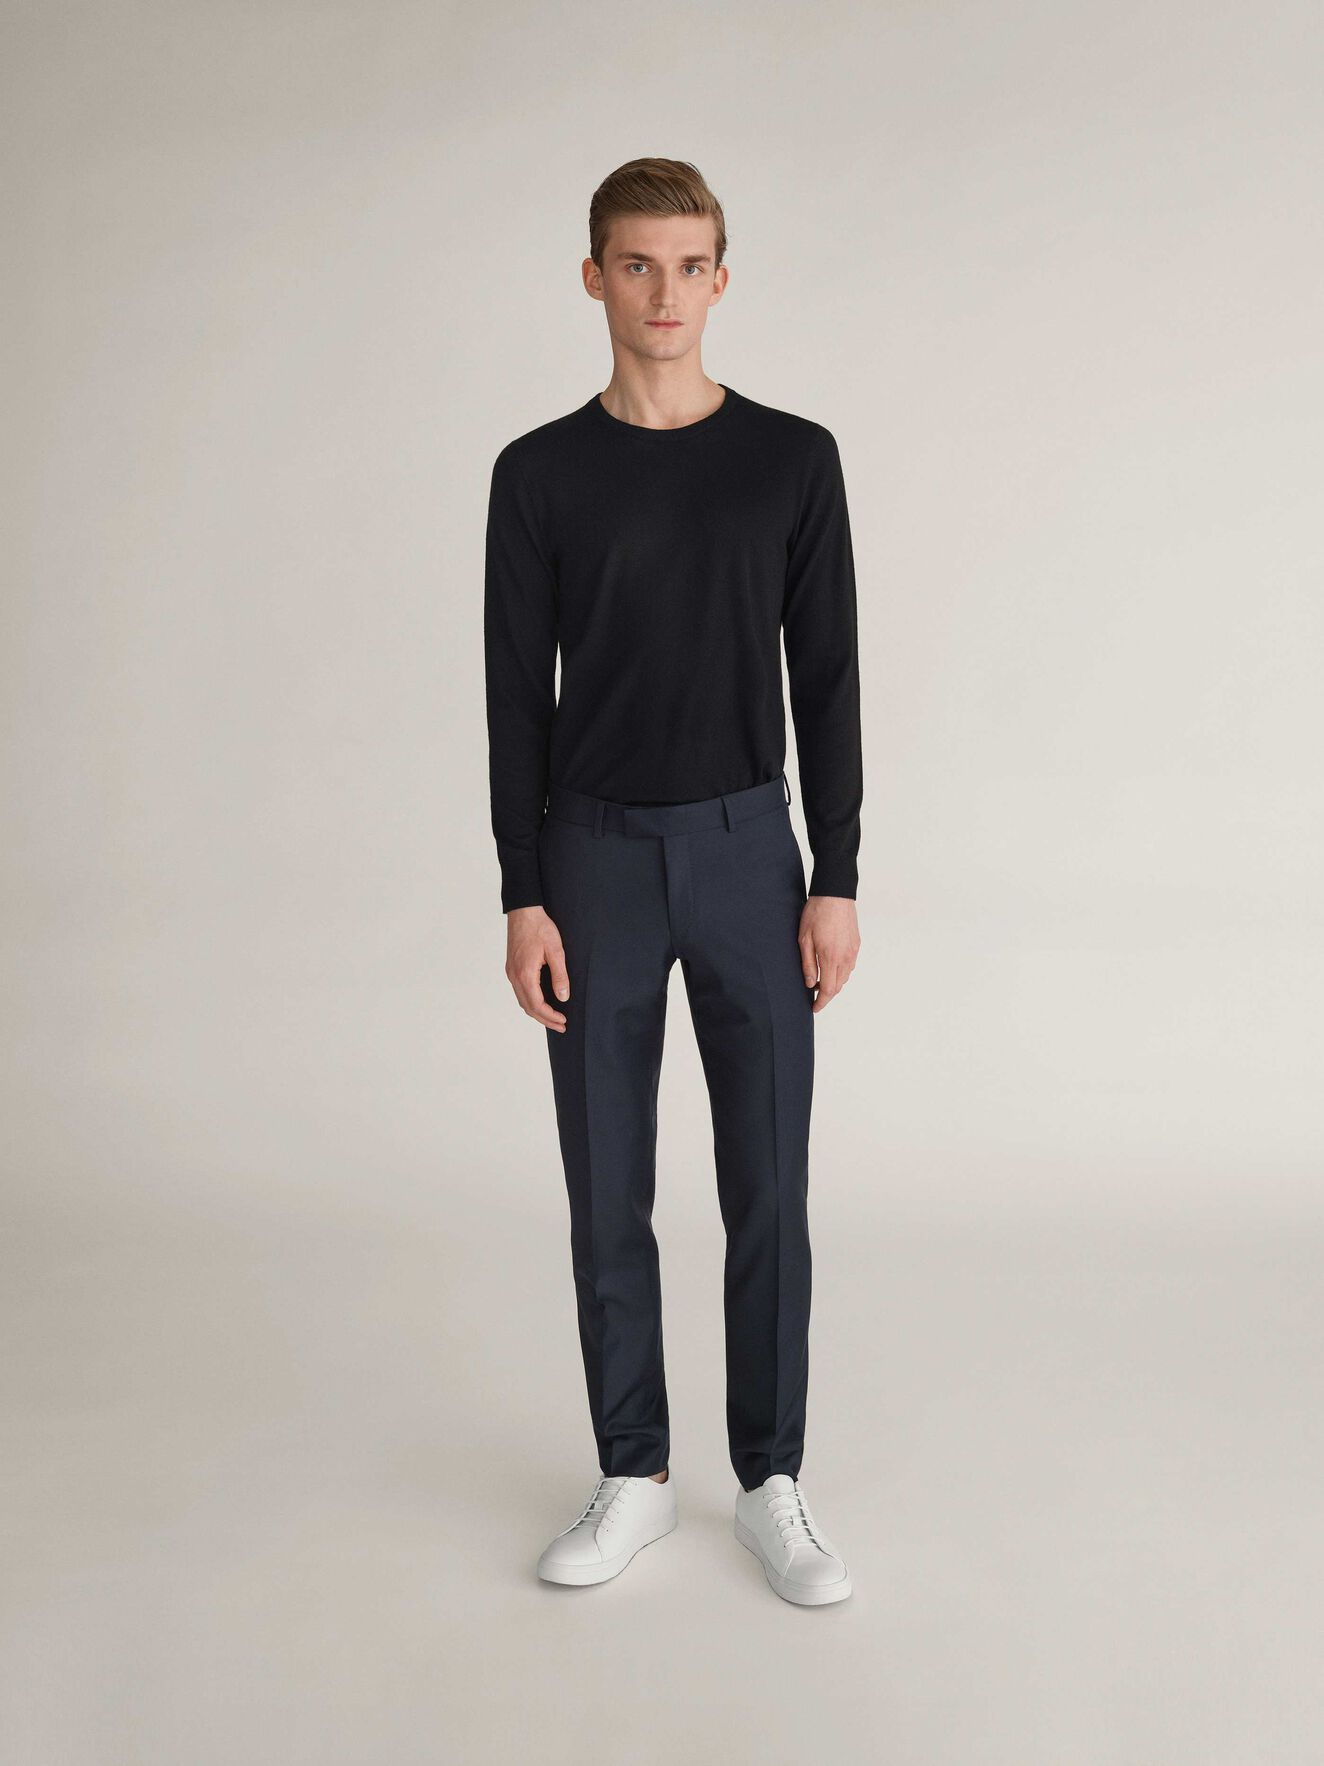 Matias Pullover in Black from Tiger of Sweden